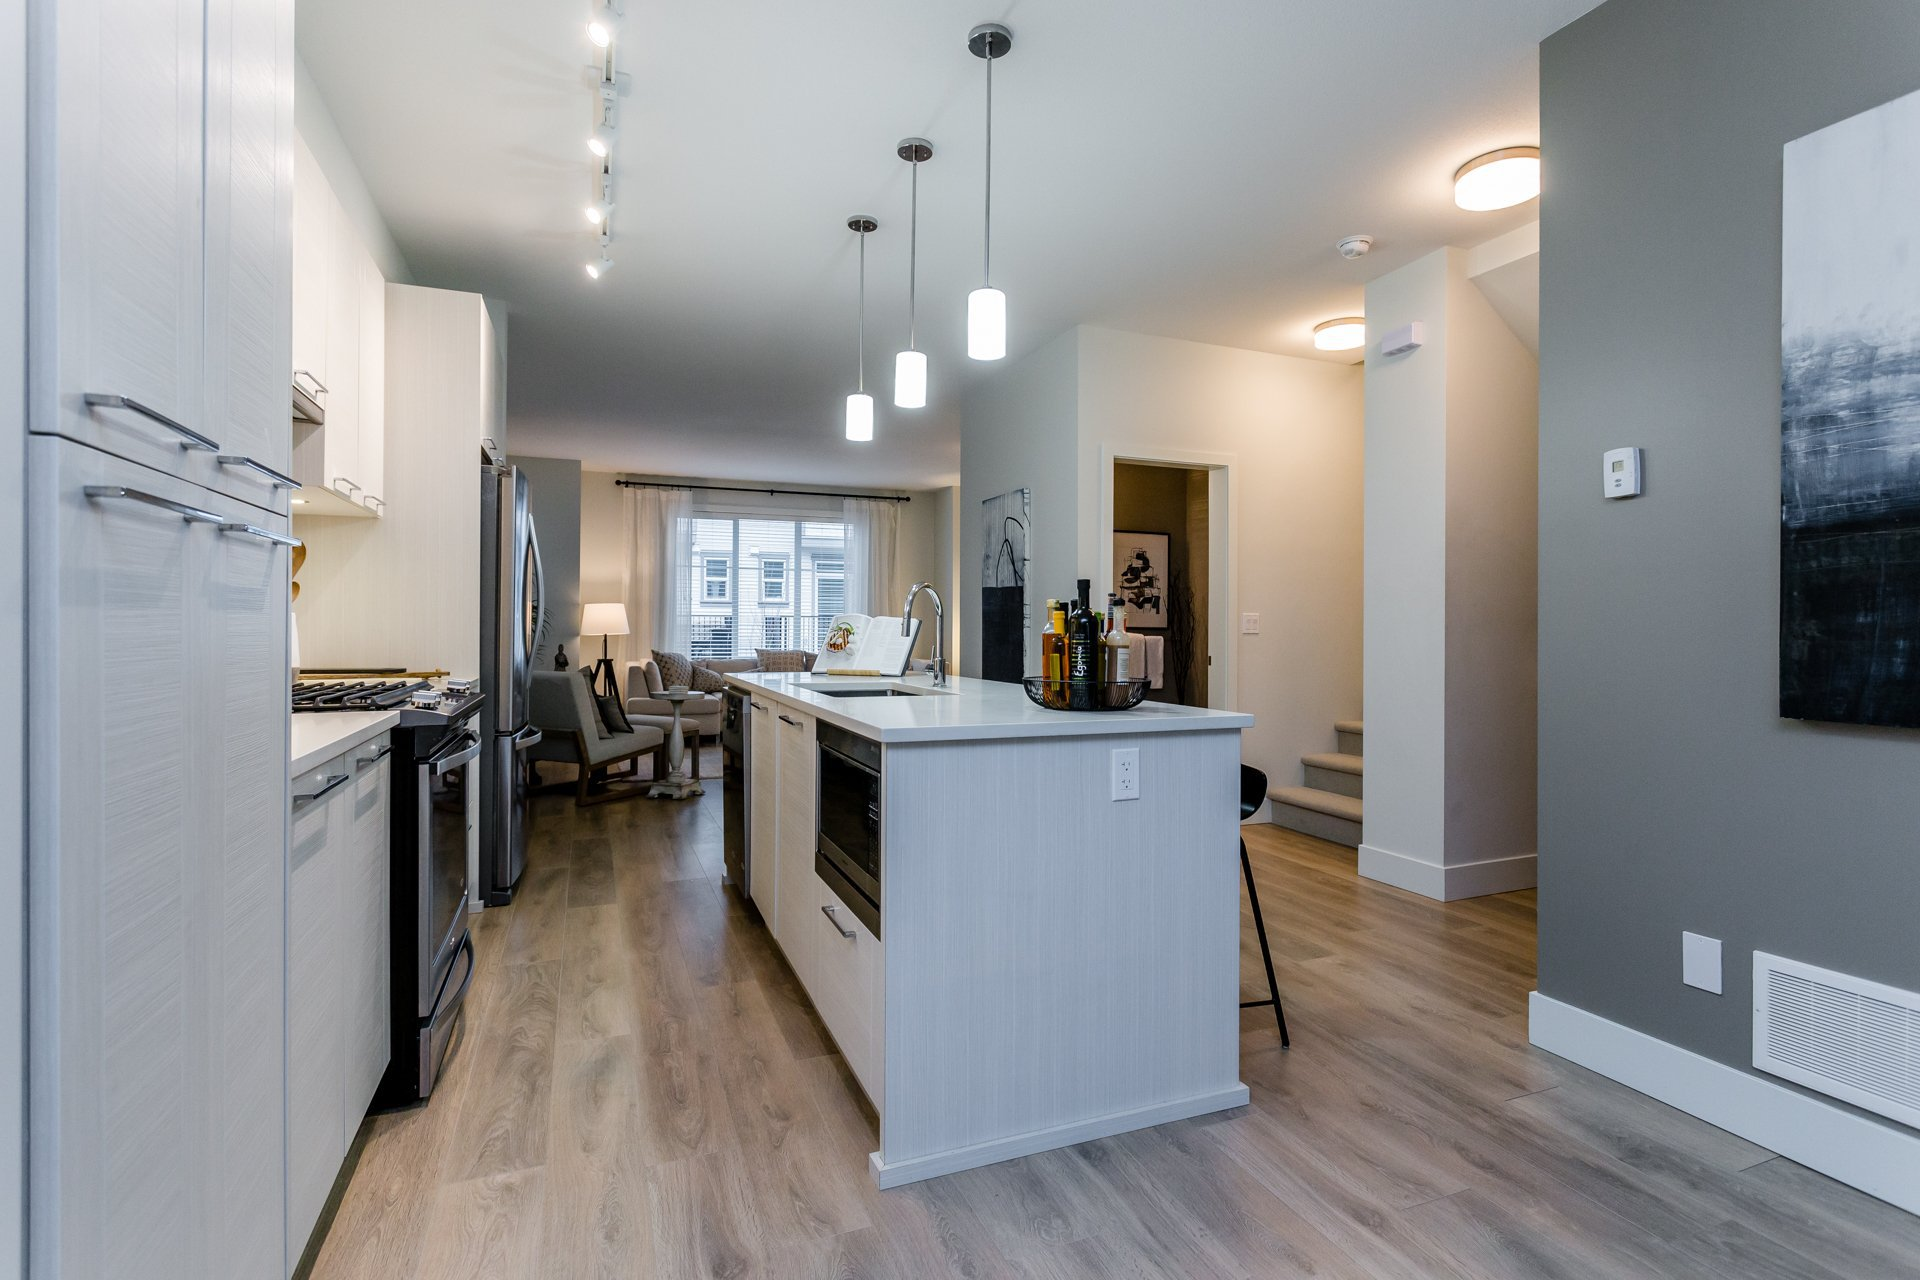 """Photo 9: Photos: 8 8217 204B Street in Langley: Willoughby Heights Townhouse for sale in """"EVERLY GREEN"""" : MLS®# R2236678"""